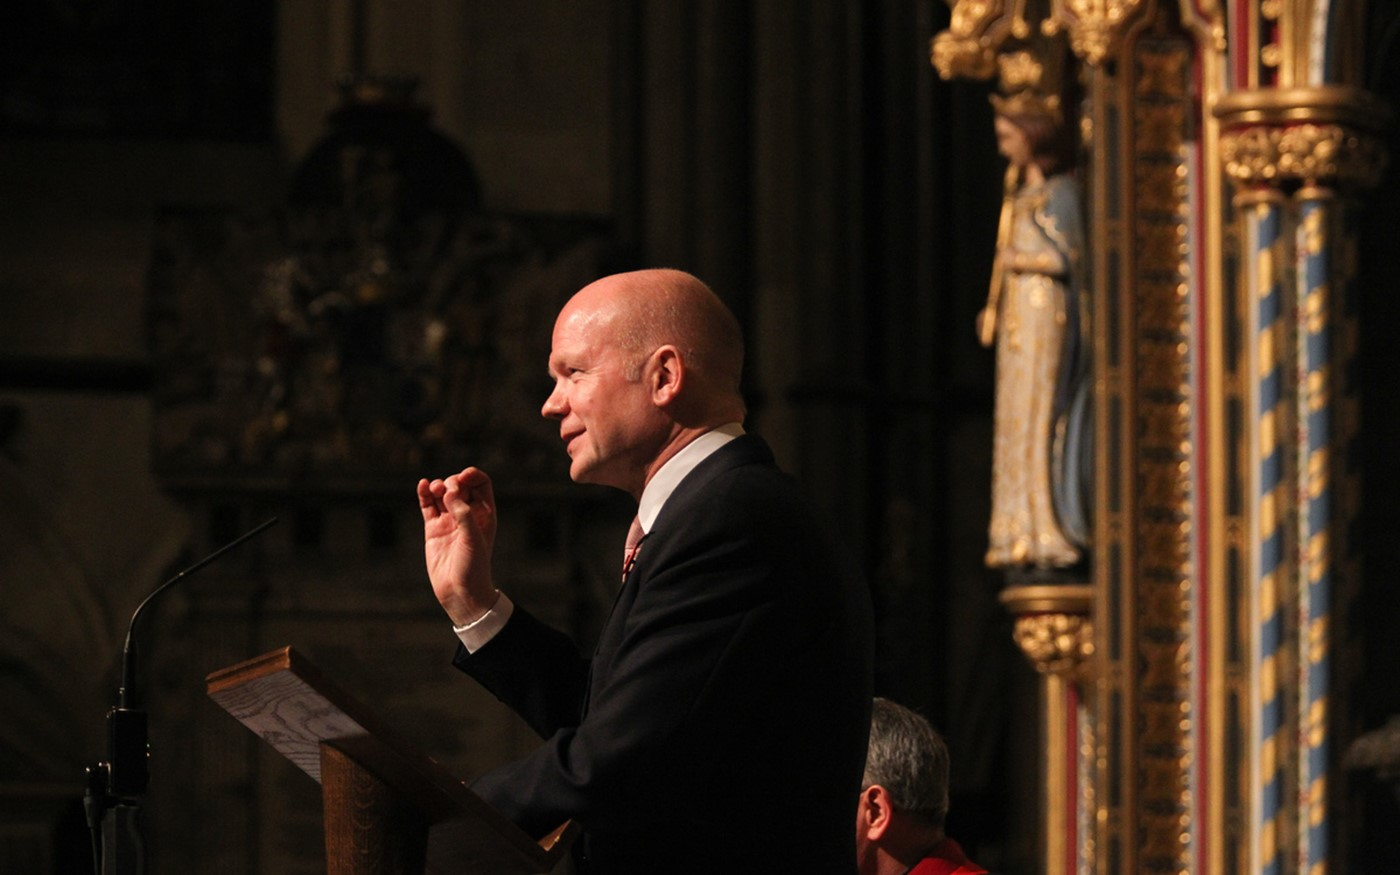 William Hague's lecture was part of Westminster Abbey Institute Going to War Season